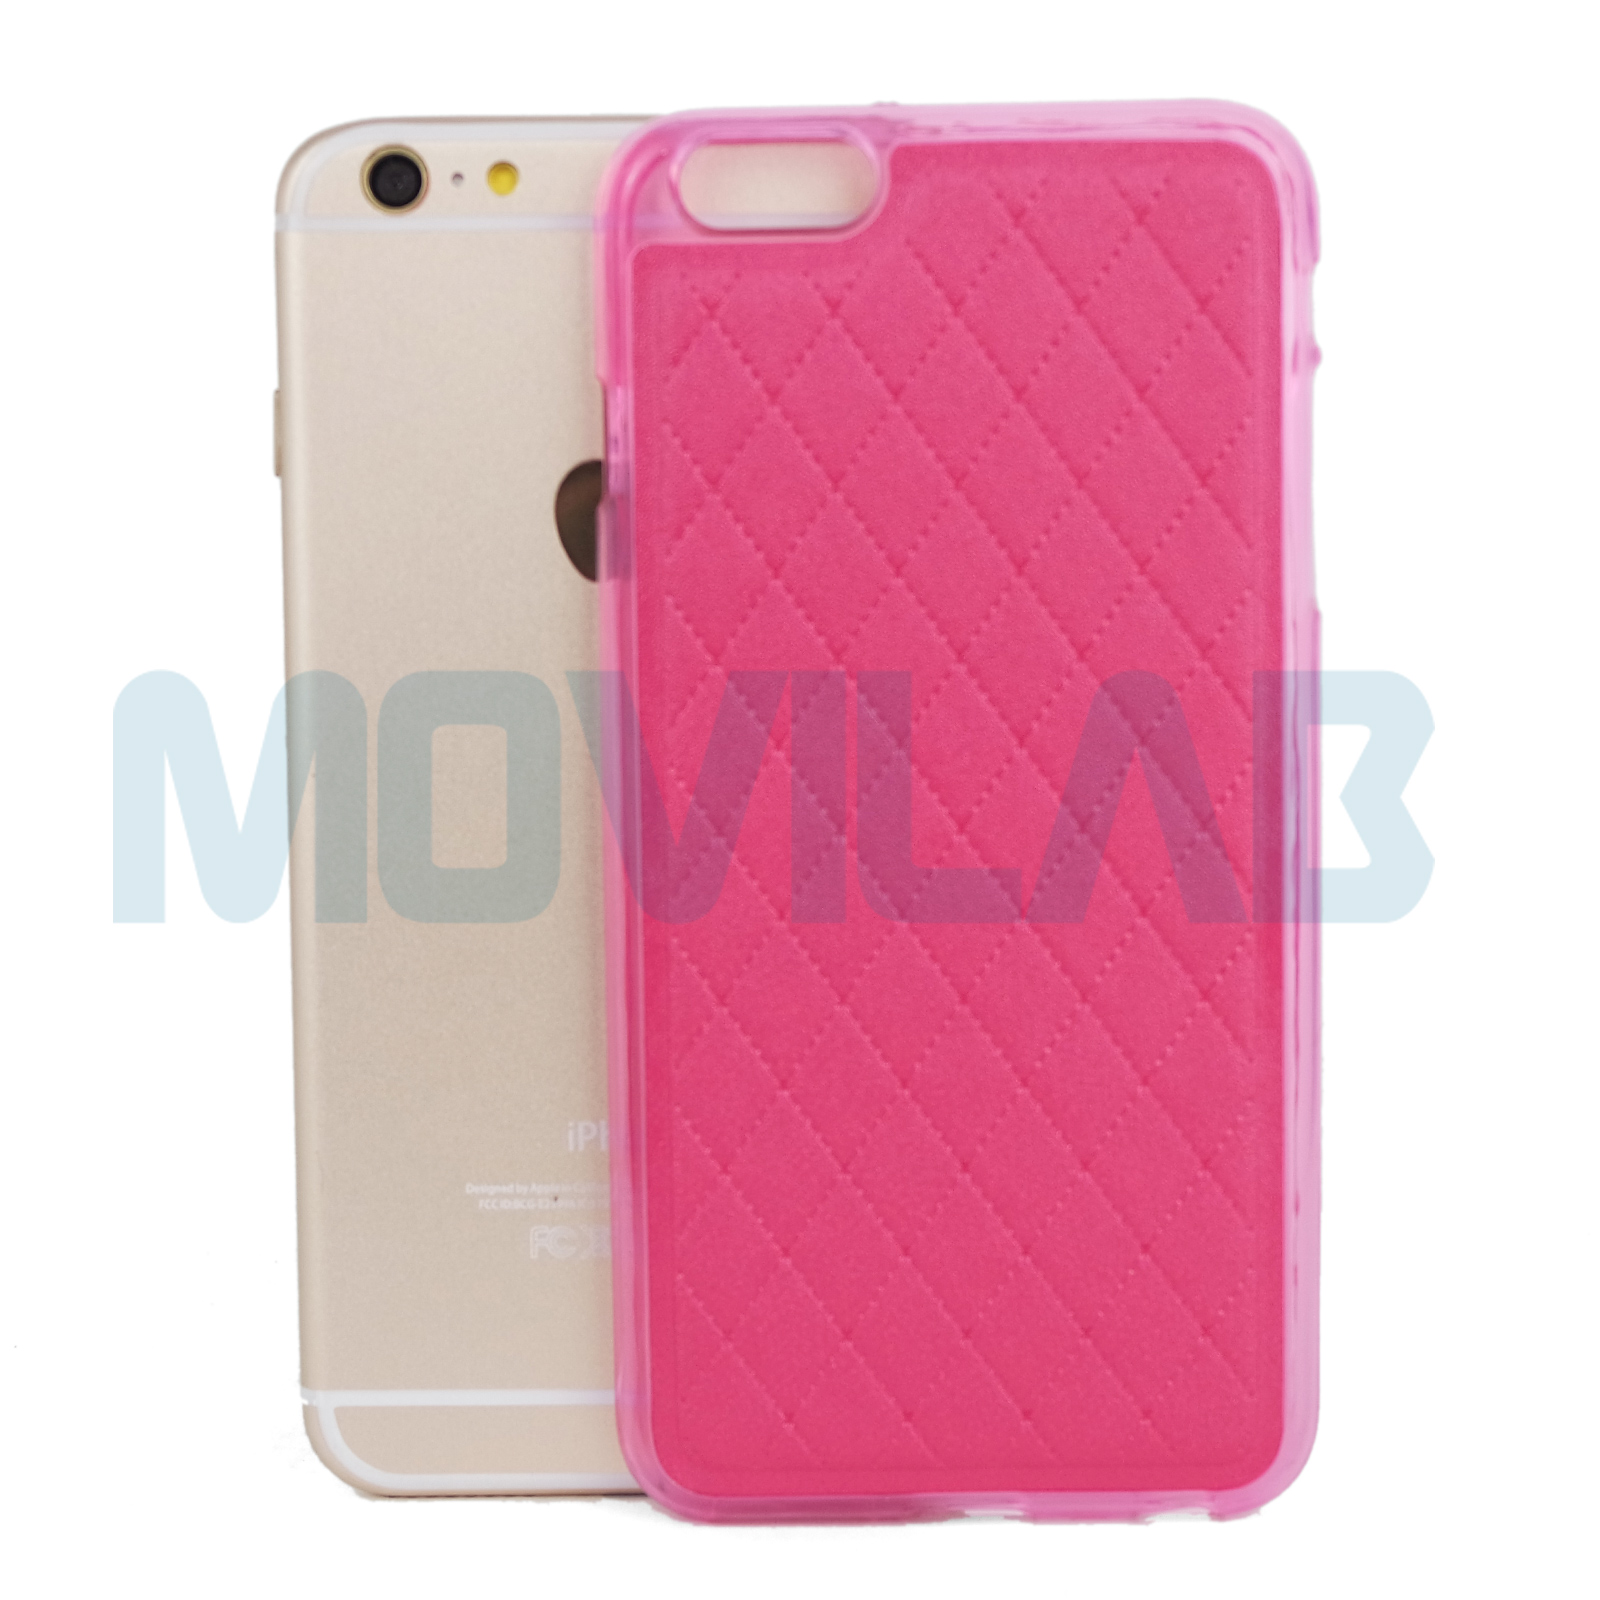 Funda carcasa gel Iphone 6 Plus par